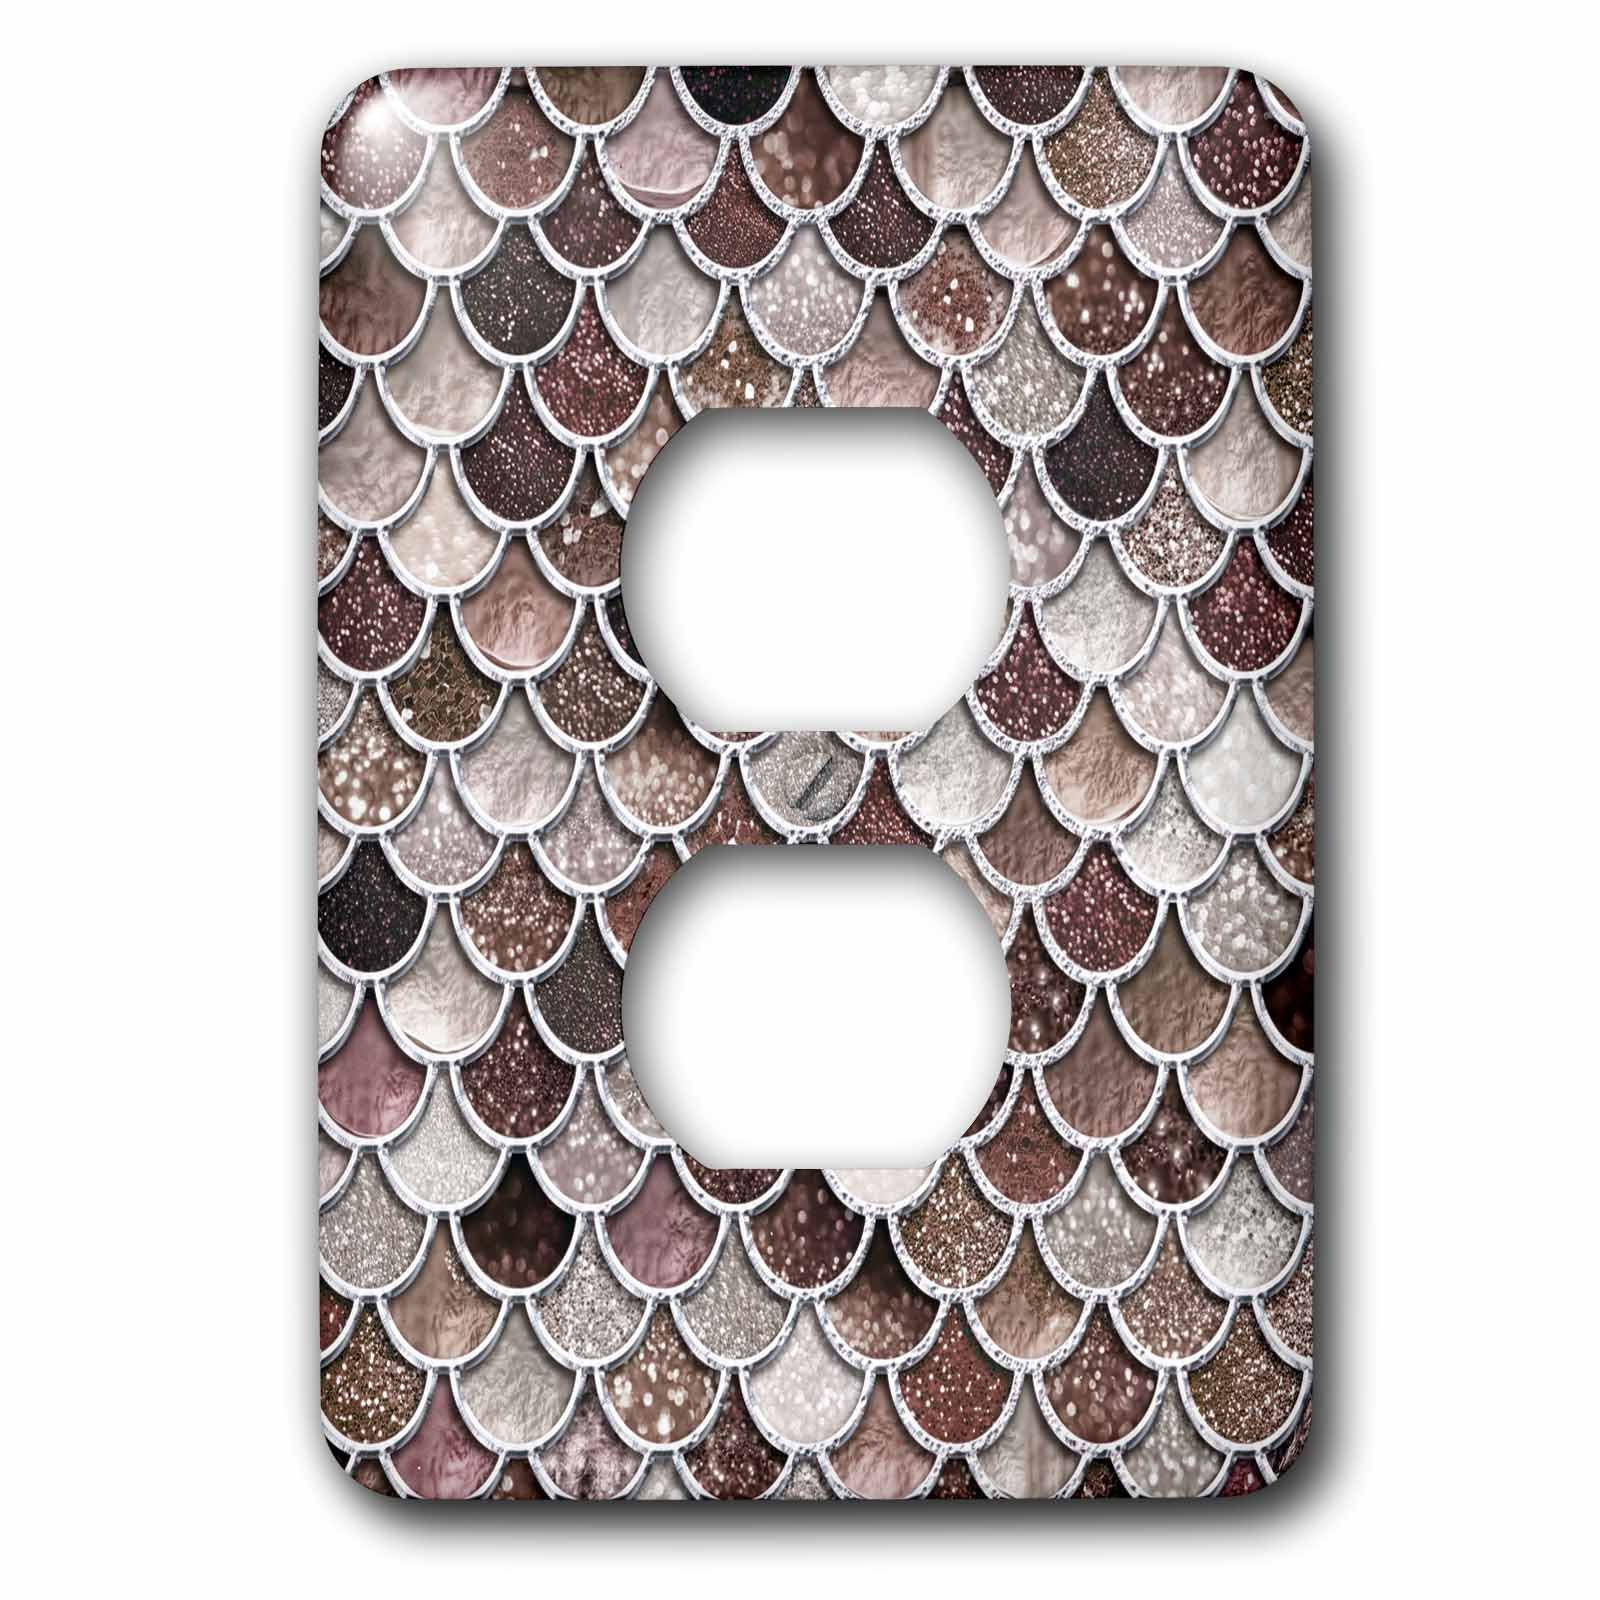 3dRose Uta Naumann Faux Glitter Pattern - Image of Sparkling Brown Luxury Elegant Mermaid Scales Glitter Effect - Light Switch Covers - 2 plug outlet cover (lsp_275445_6) by 3dRose (Image #1)